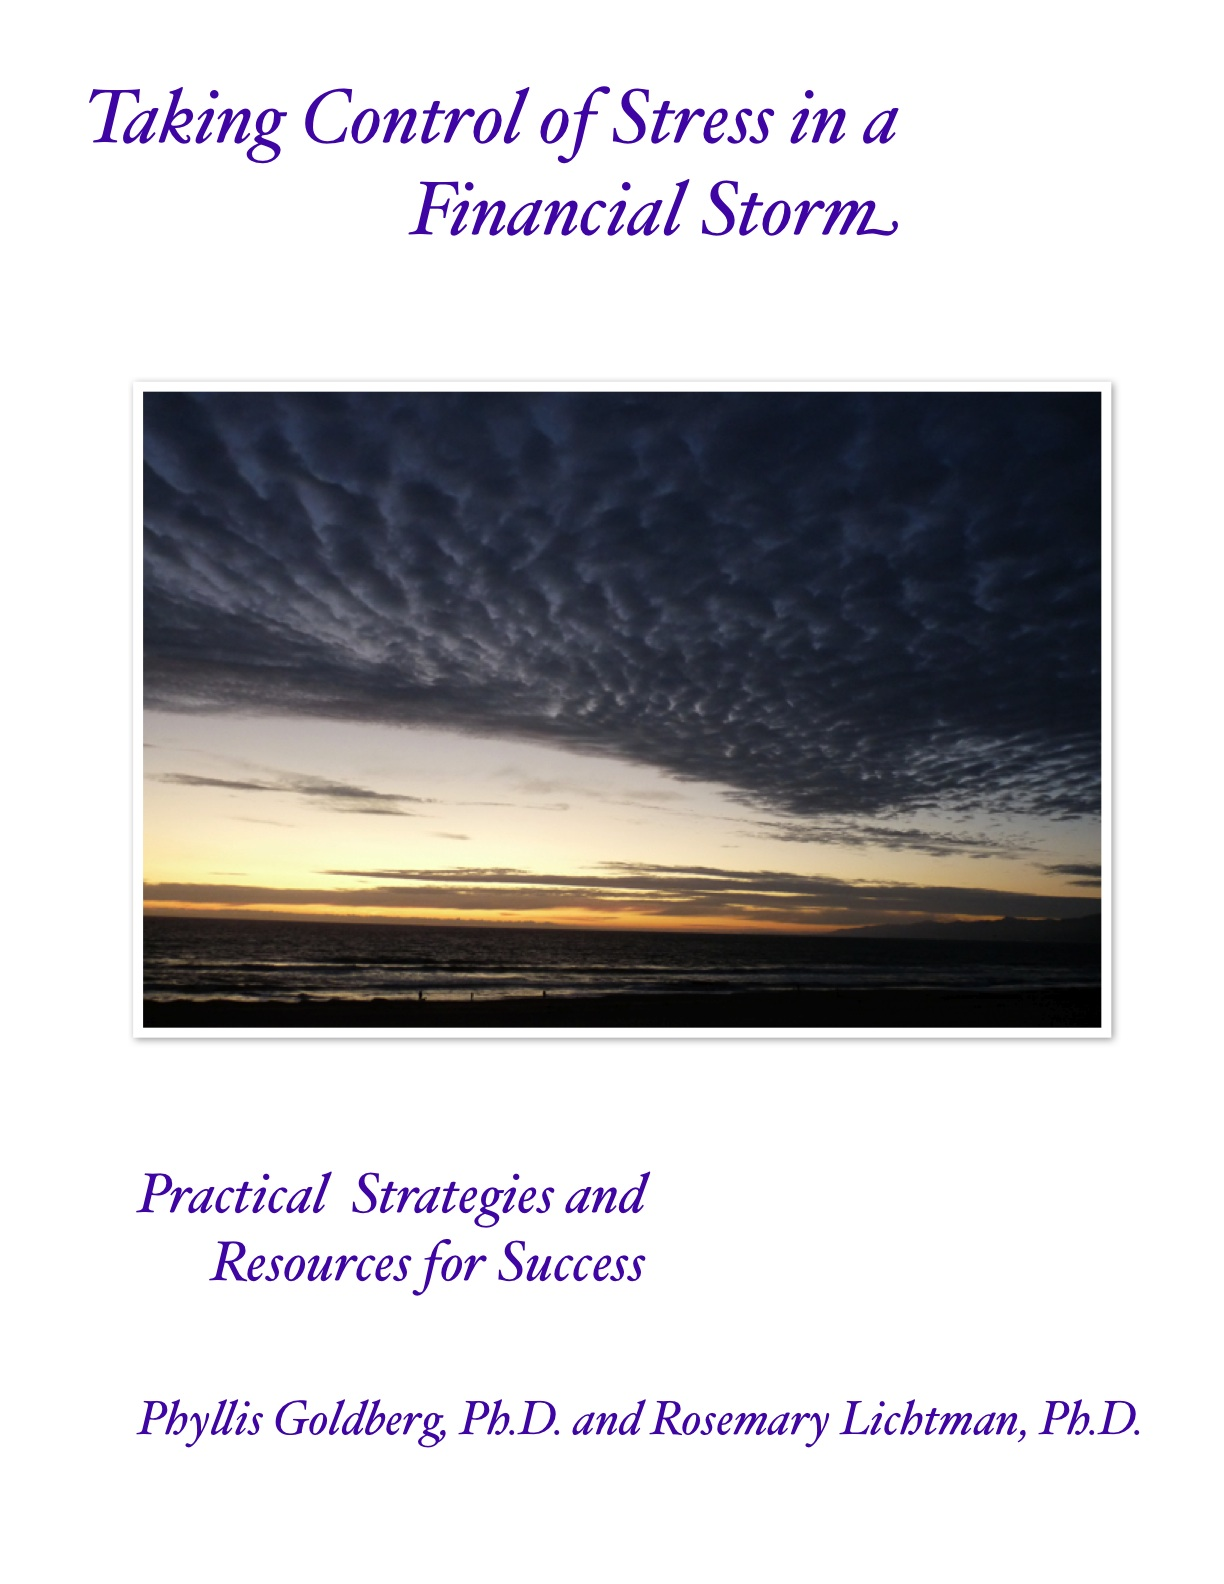 Storm and stress essay titles